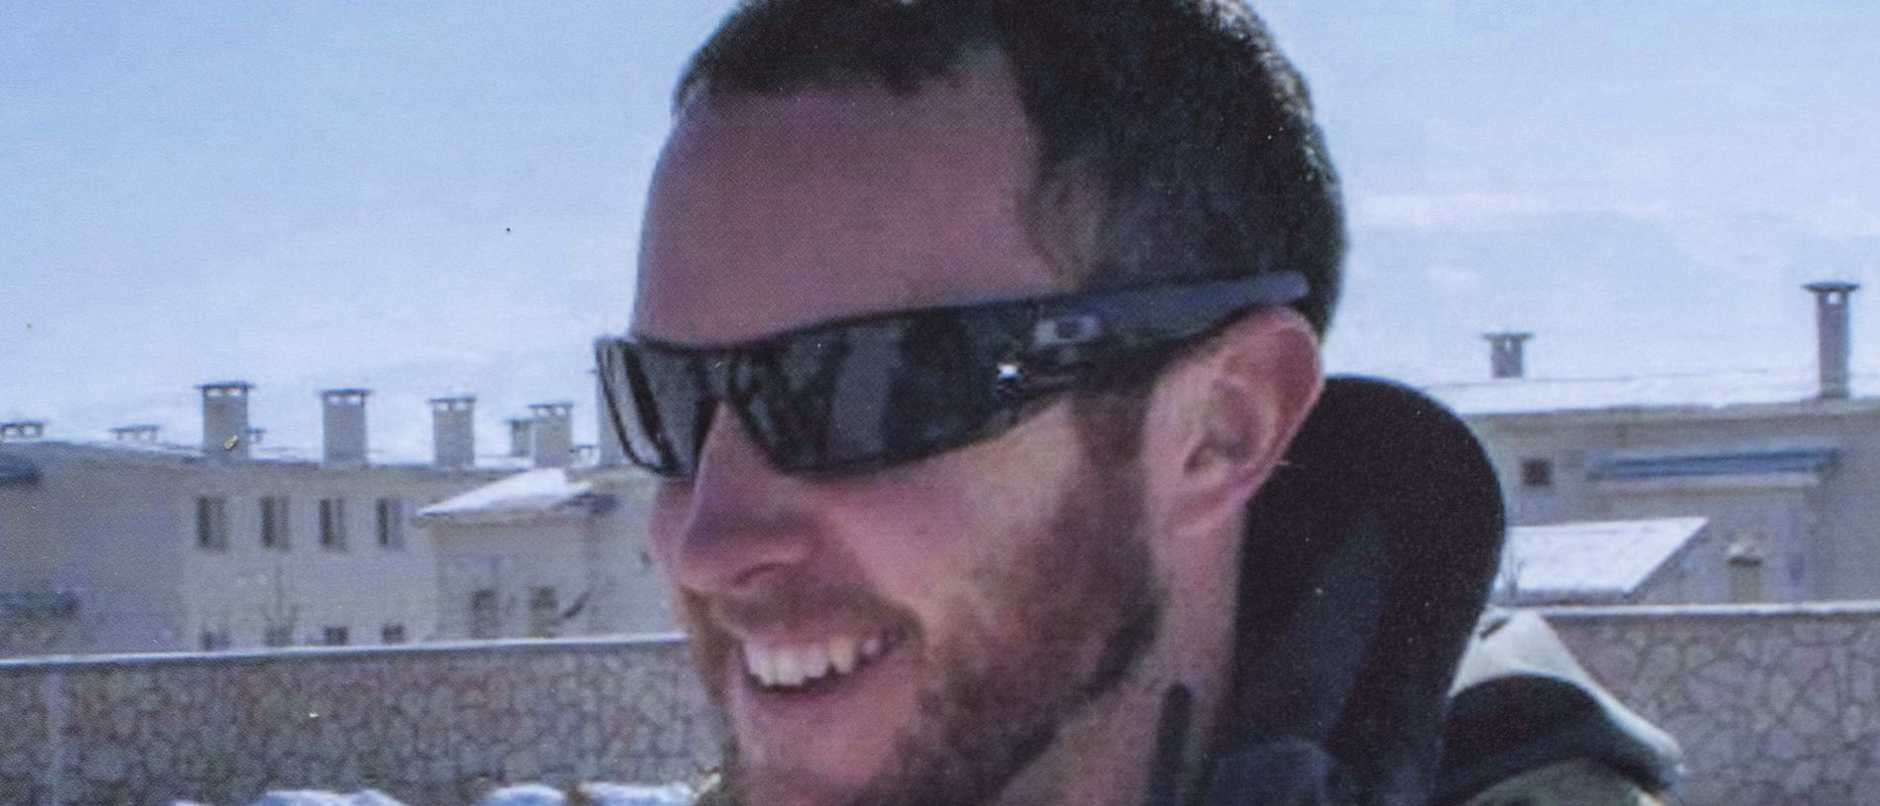 A coronial inquiry has started today into the shooting death of Australian security guard Chris Betts, who was found dead at the Baghdad Embassy in 2016.